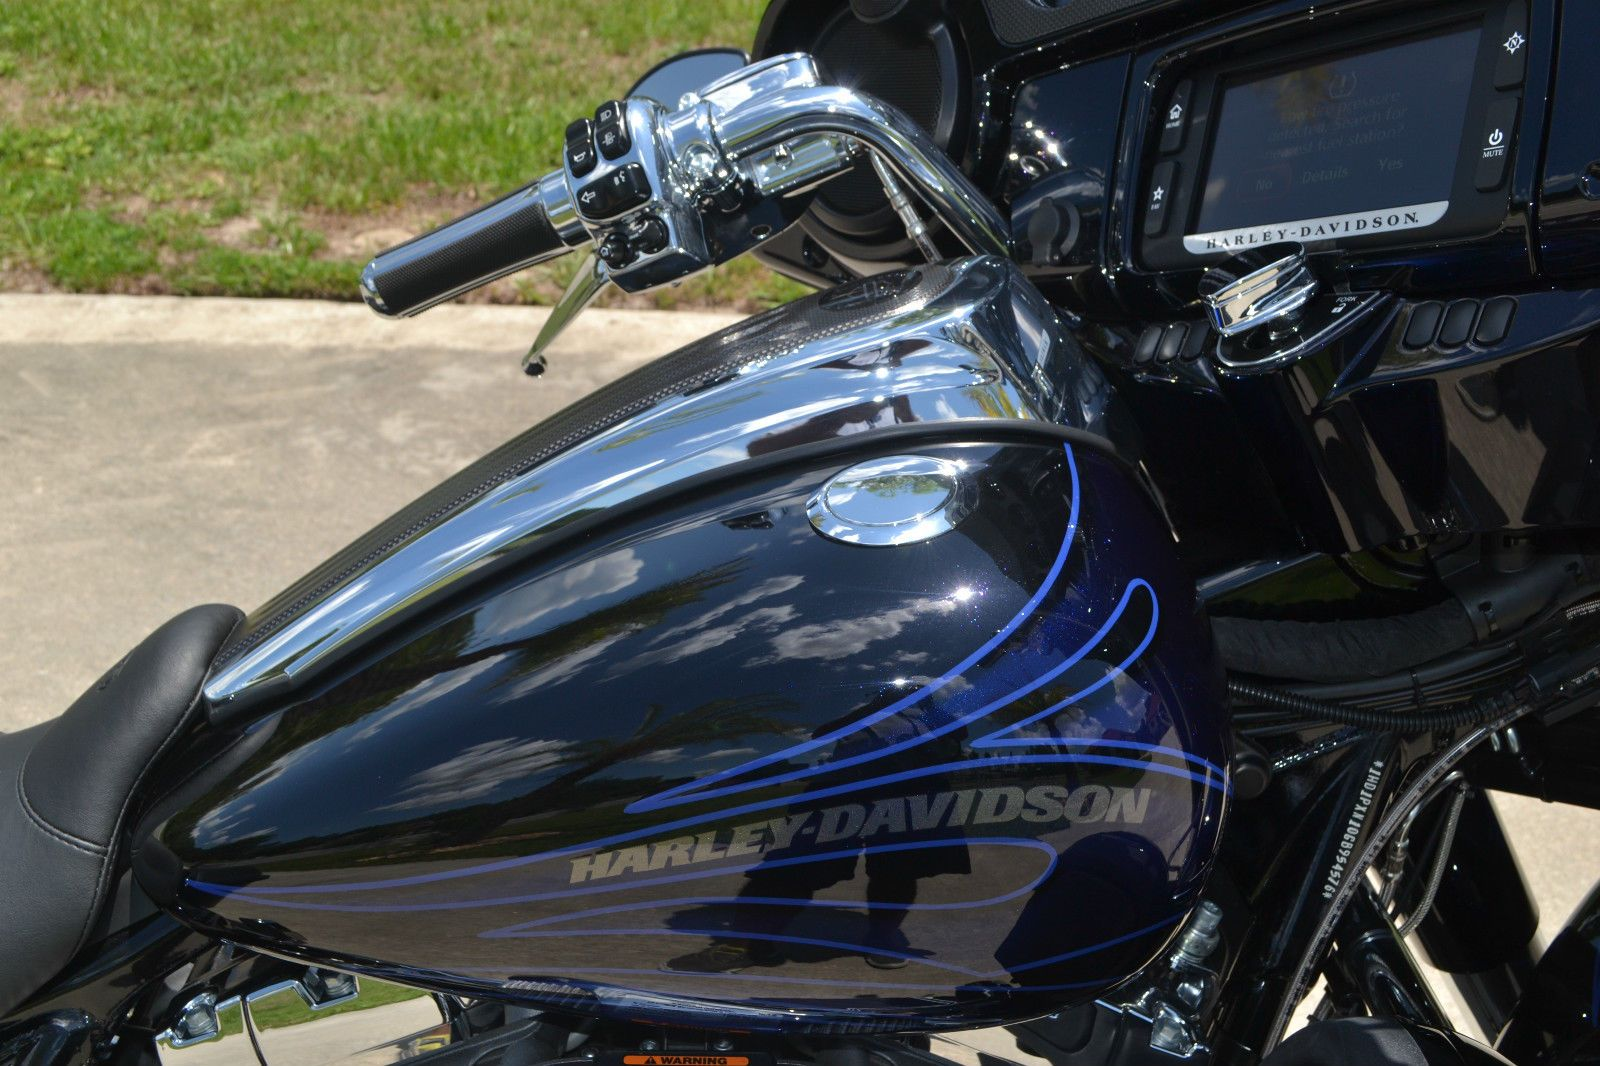 Ebay Motors Motorcycles >> Details About 2018 Harley Davidson Touring Motorcycle Ideas